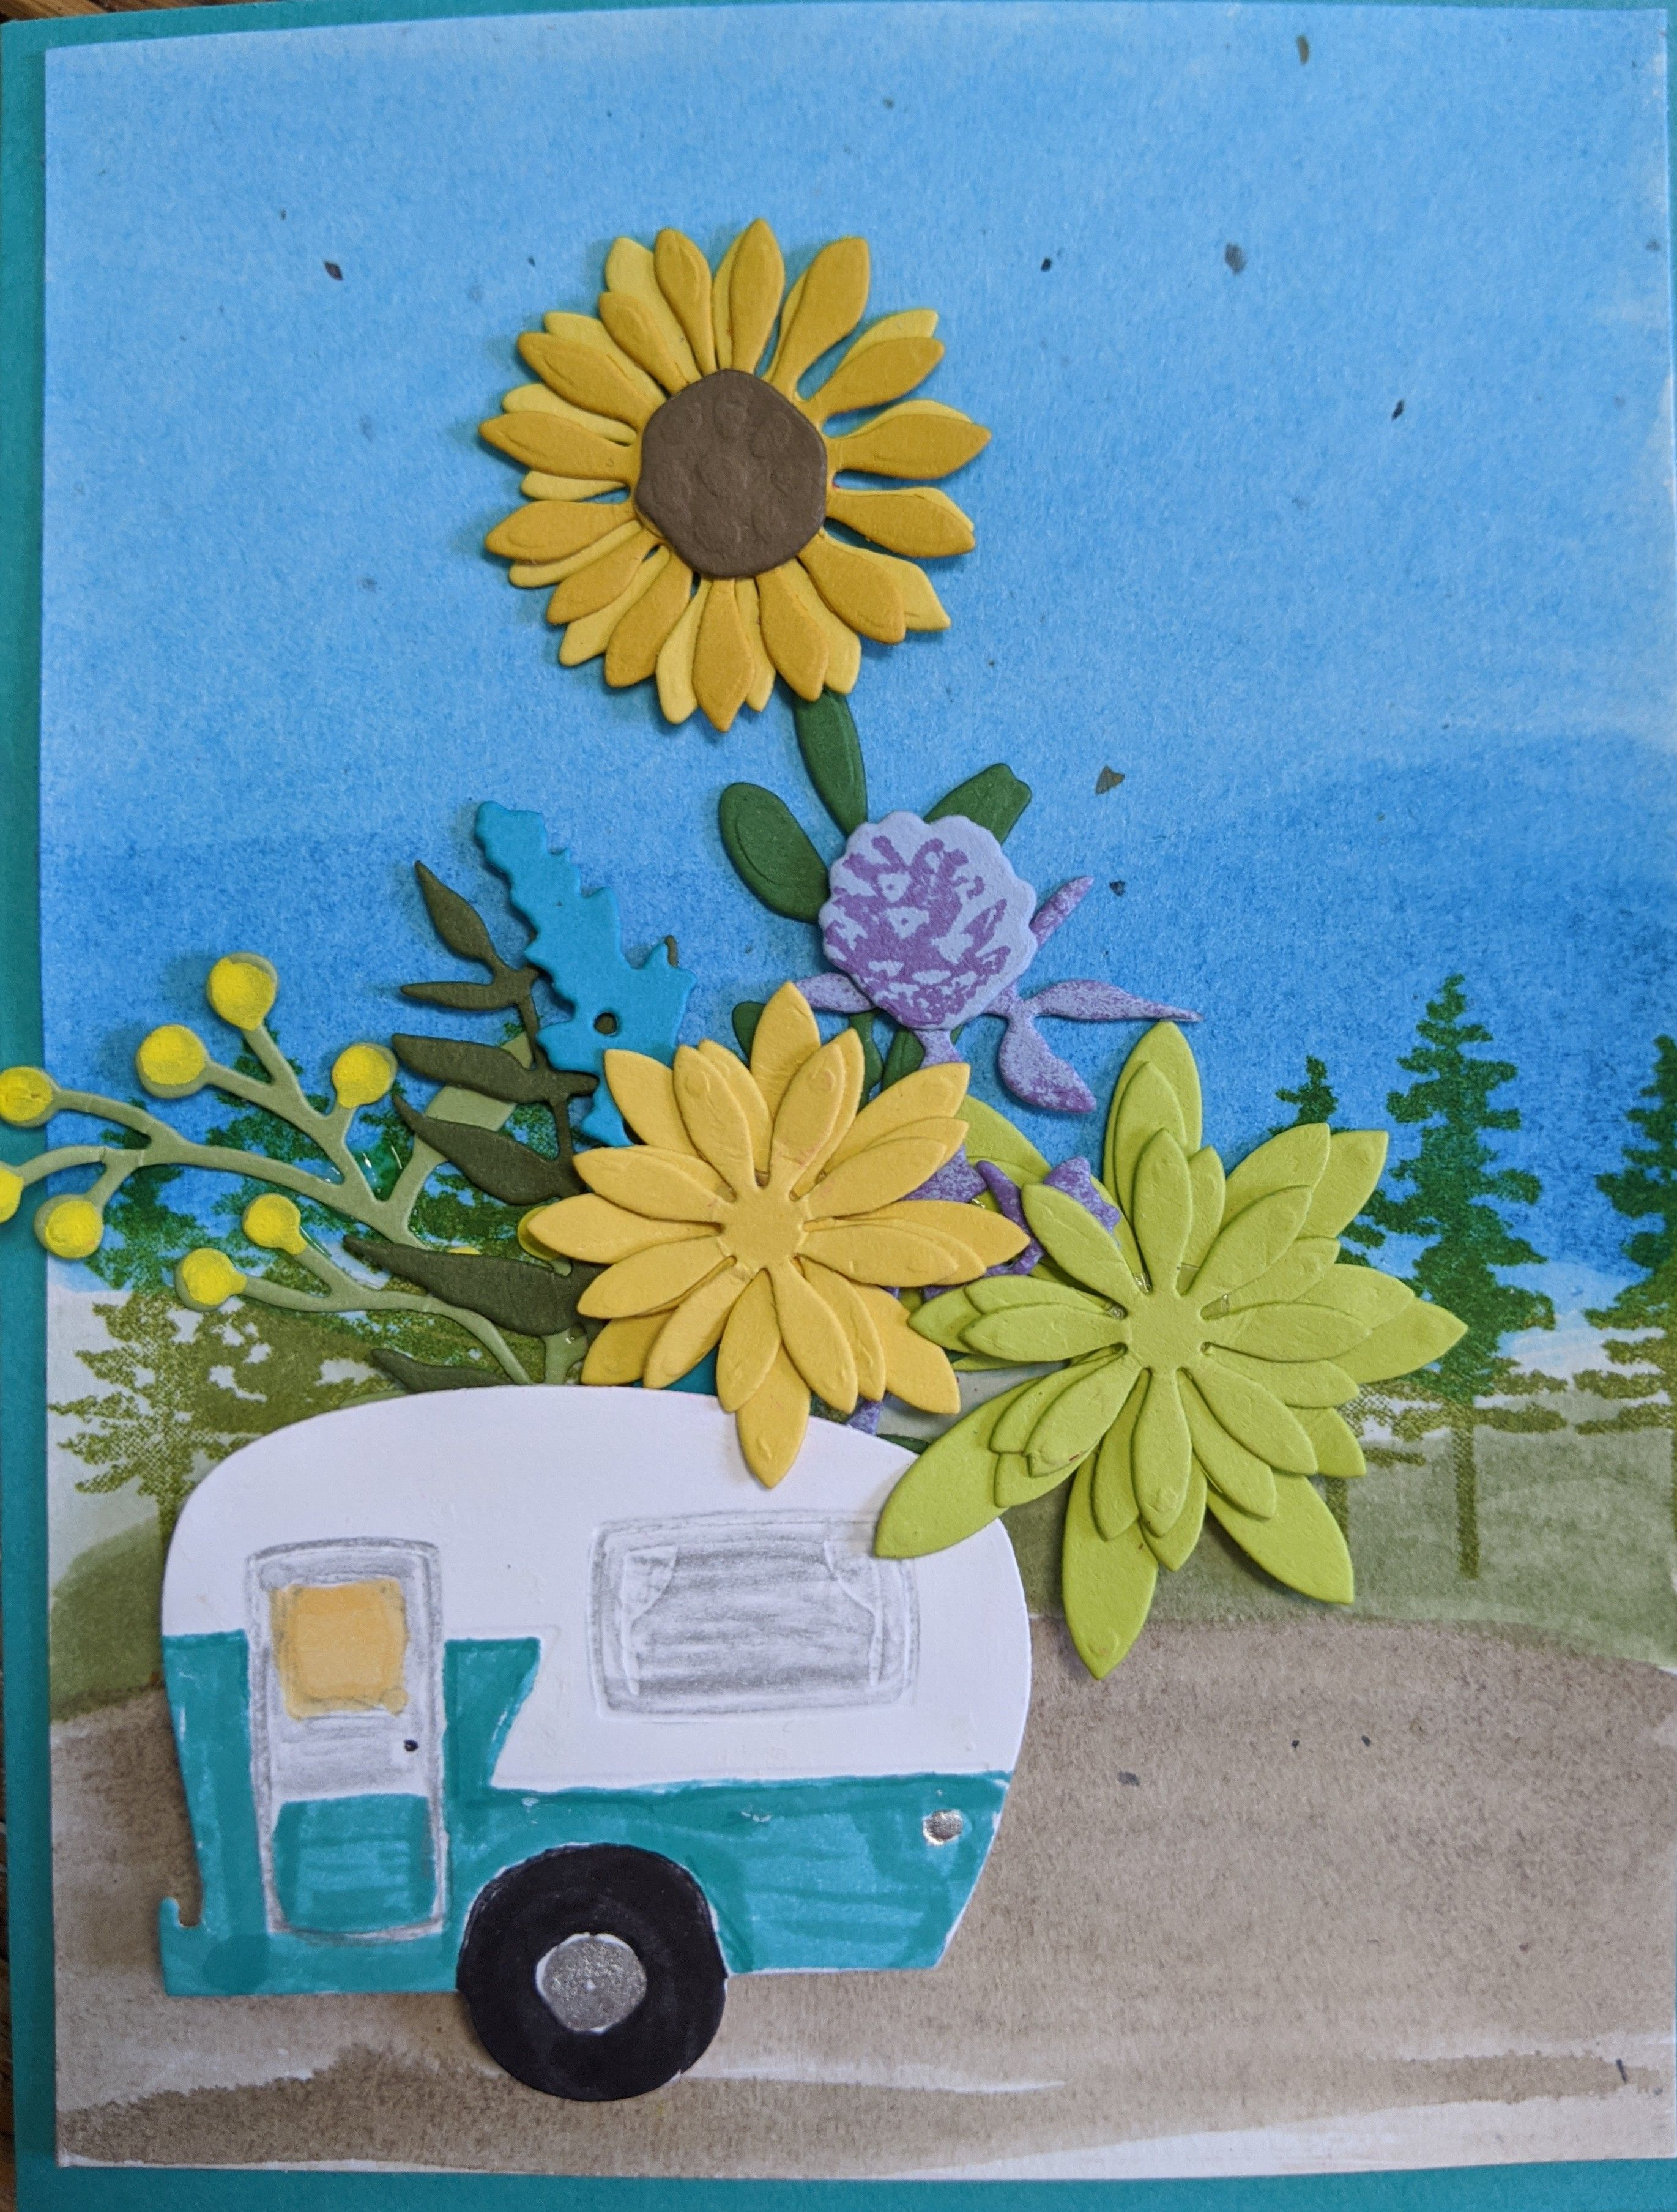 Handmade Card for Retro Road Tripper/ Vintage Vacationer